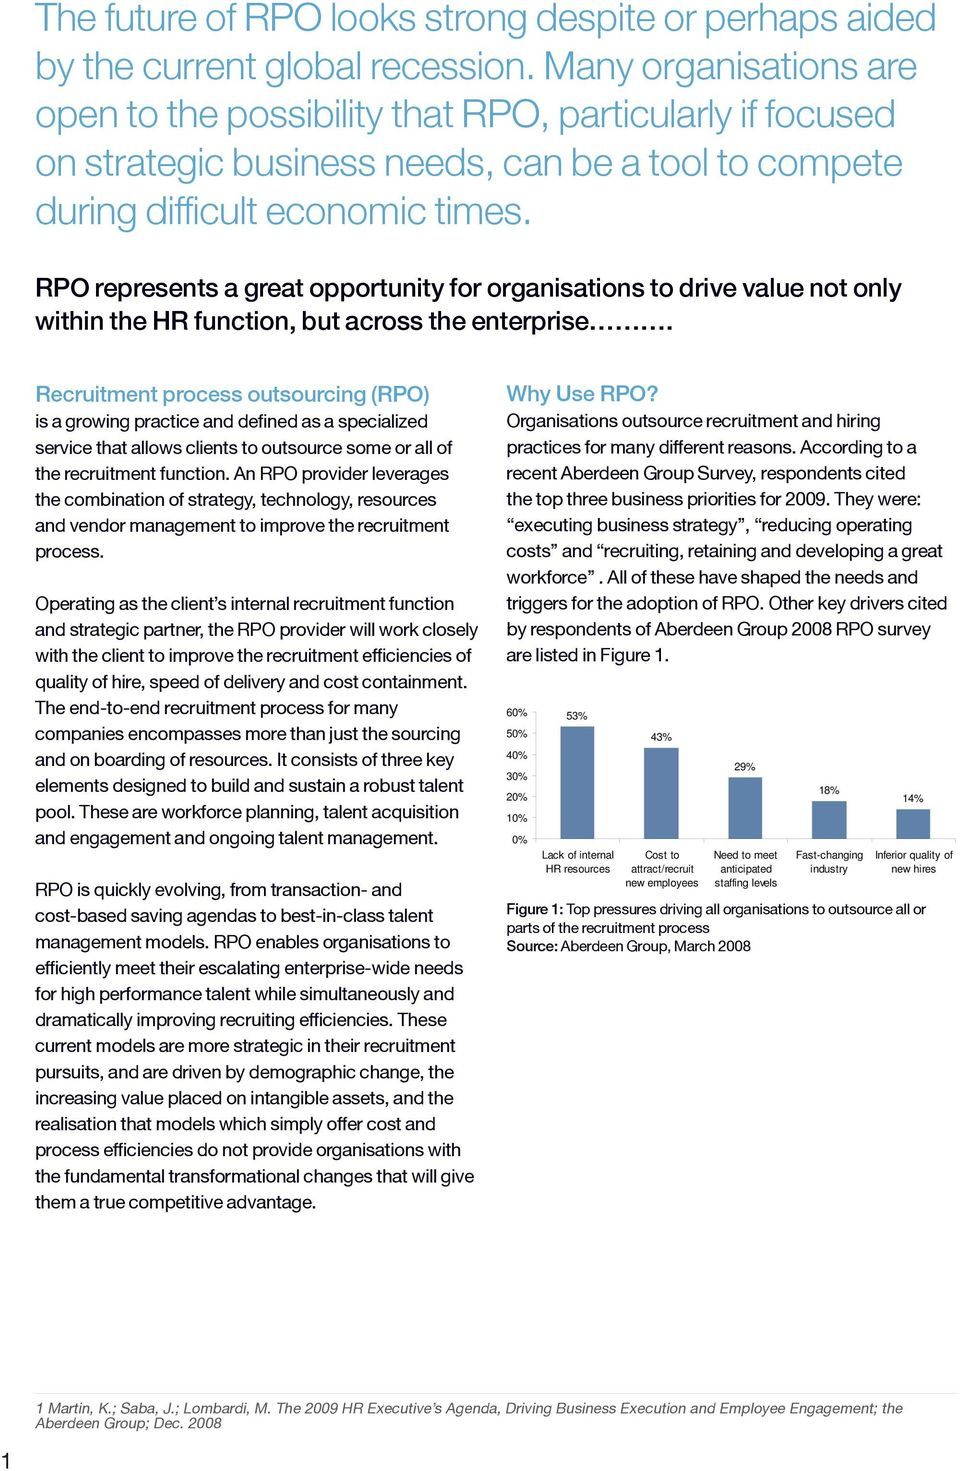 RPO represents a great opportunity for organisations to drive value not only within the HR function, but across the enterprise.